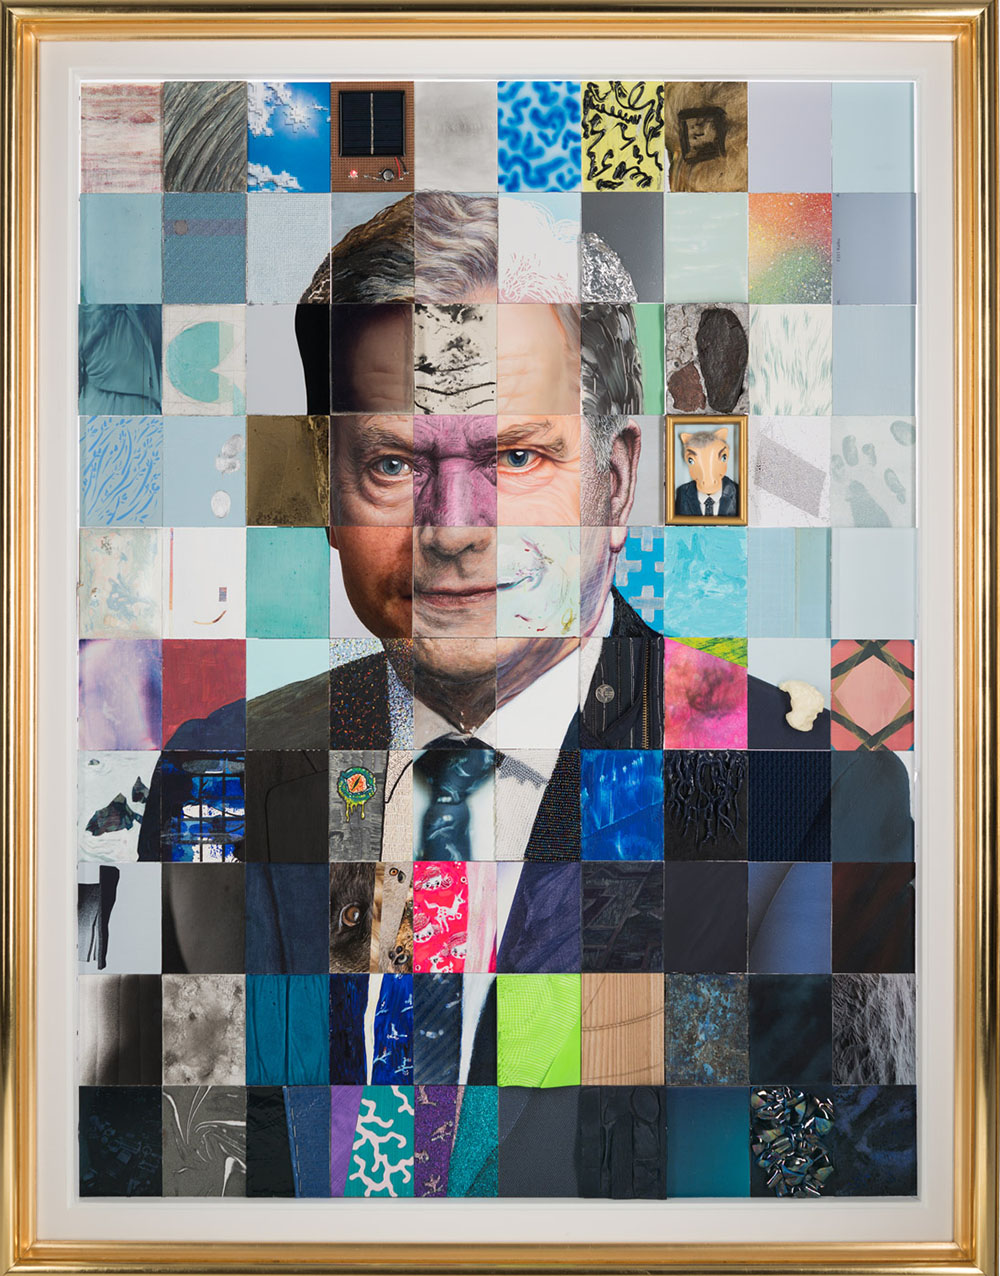 Suomen Tasavallan presidentin Sauli Niinistön muotokuva, yhdessä 100:n taiteilijan kanssa /  The Portrait of the President Sauli Niinistö of the Republic of Finland, together with 100 artists  2018  Valtioneuvoston kanslian kokoelmat / The Collection of The Prime Ministers Office Finland